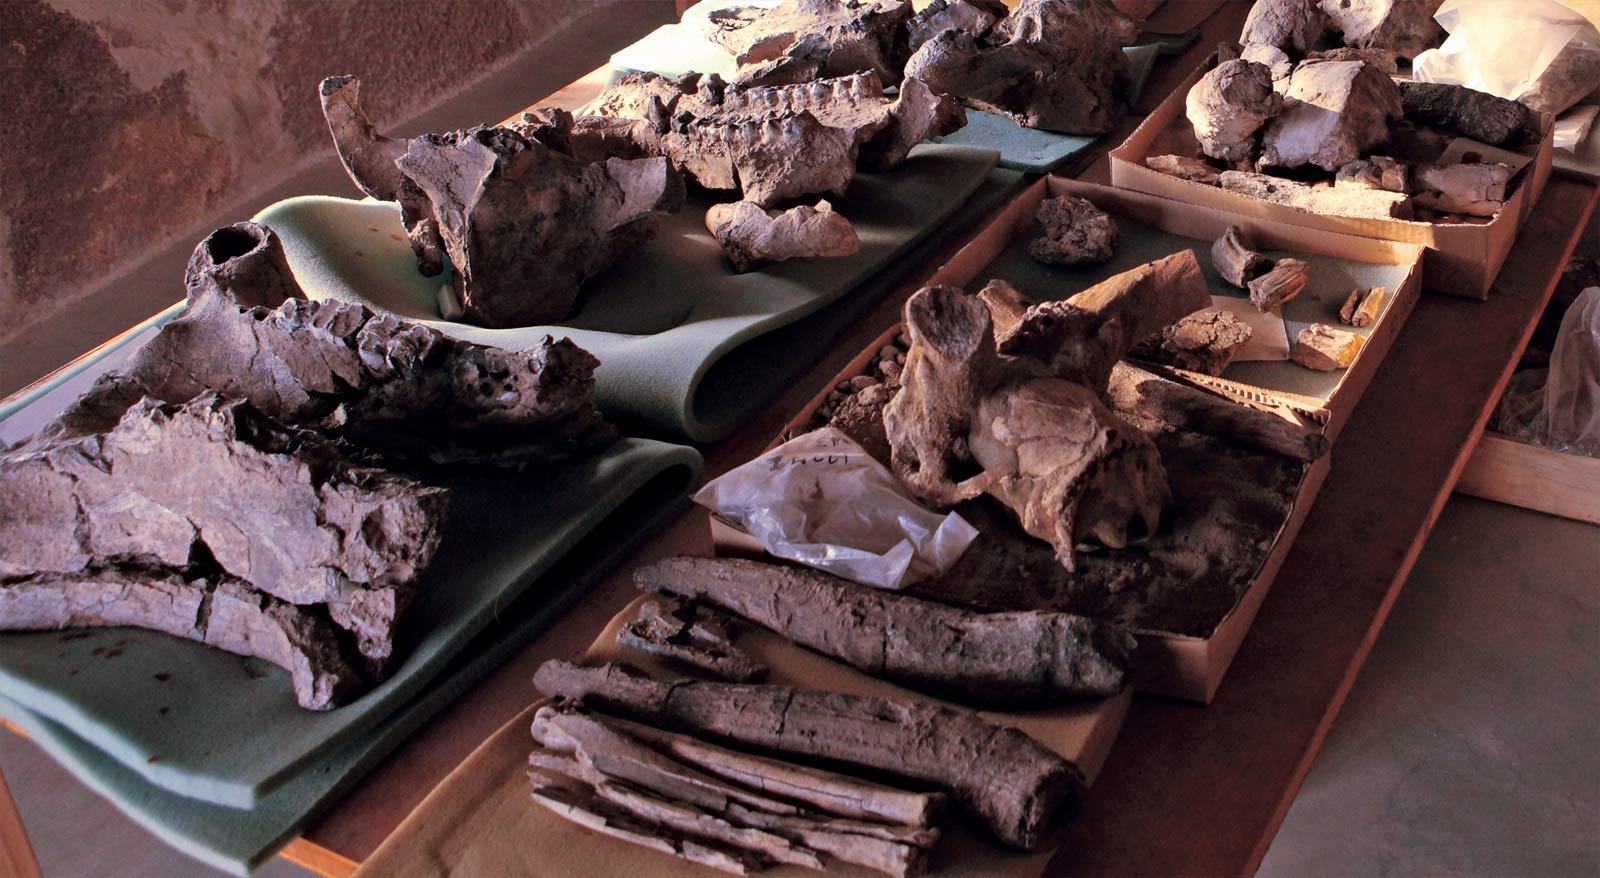 Recovered fossils await preparation and cataloging at the Turkana Basin Institute in Ileret.  Photo by Mike Hettwer